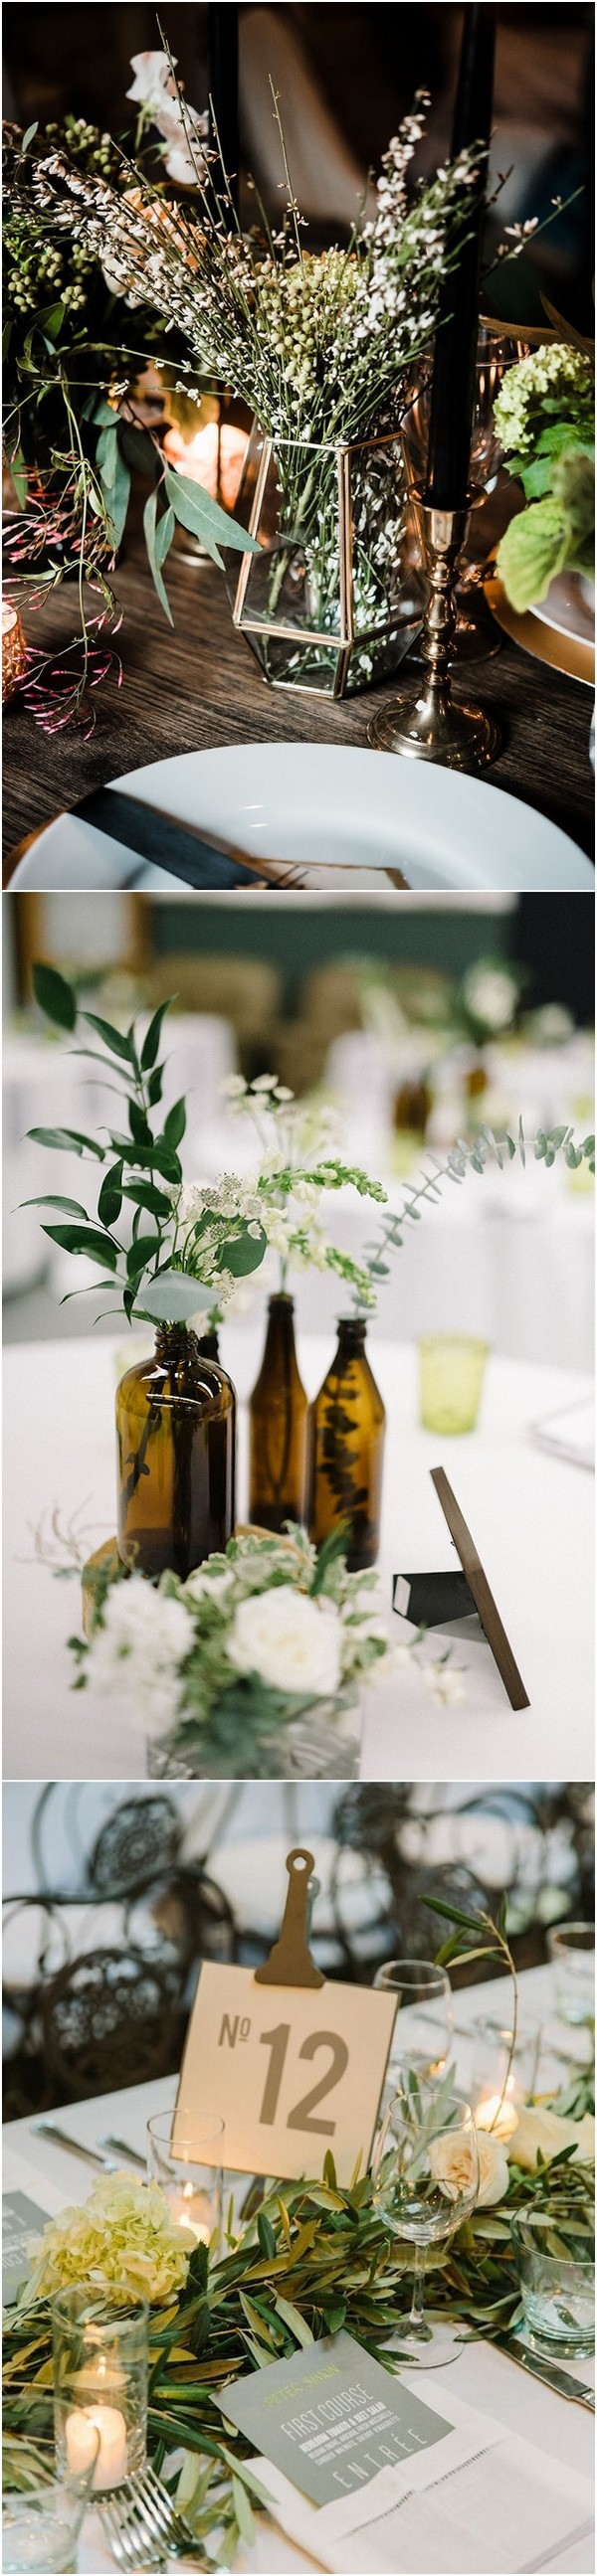 Wedding decor ideas 2018  Trending Industrial Wedding Centerpiece Ideas for   Page